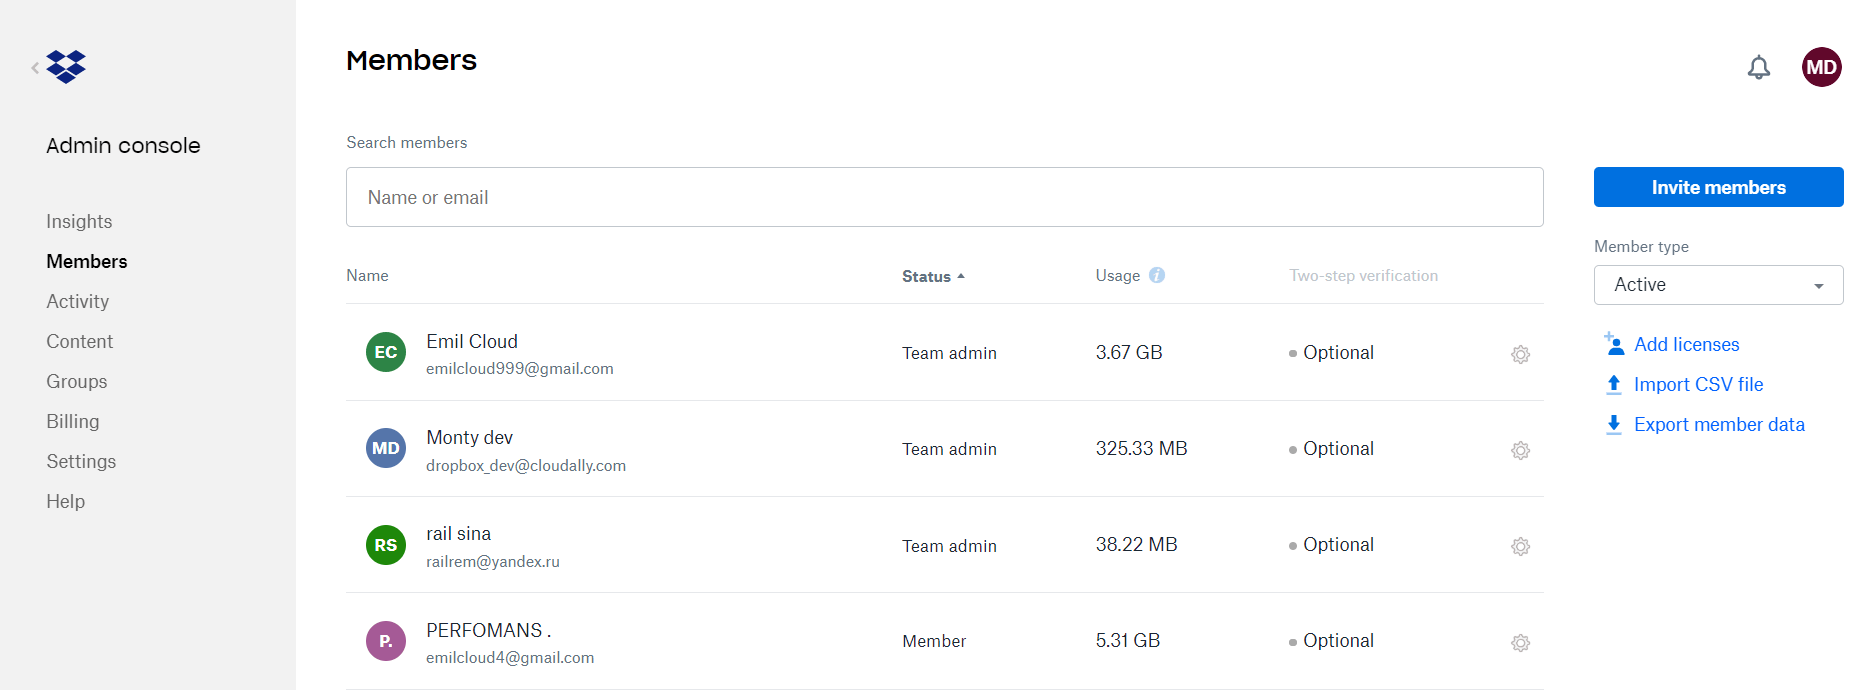 How to find your storage size in Dropbox?